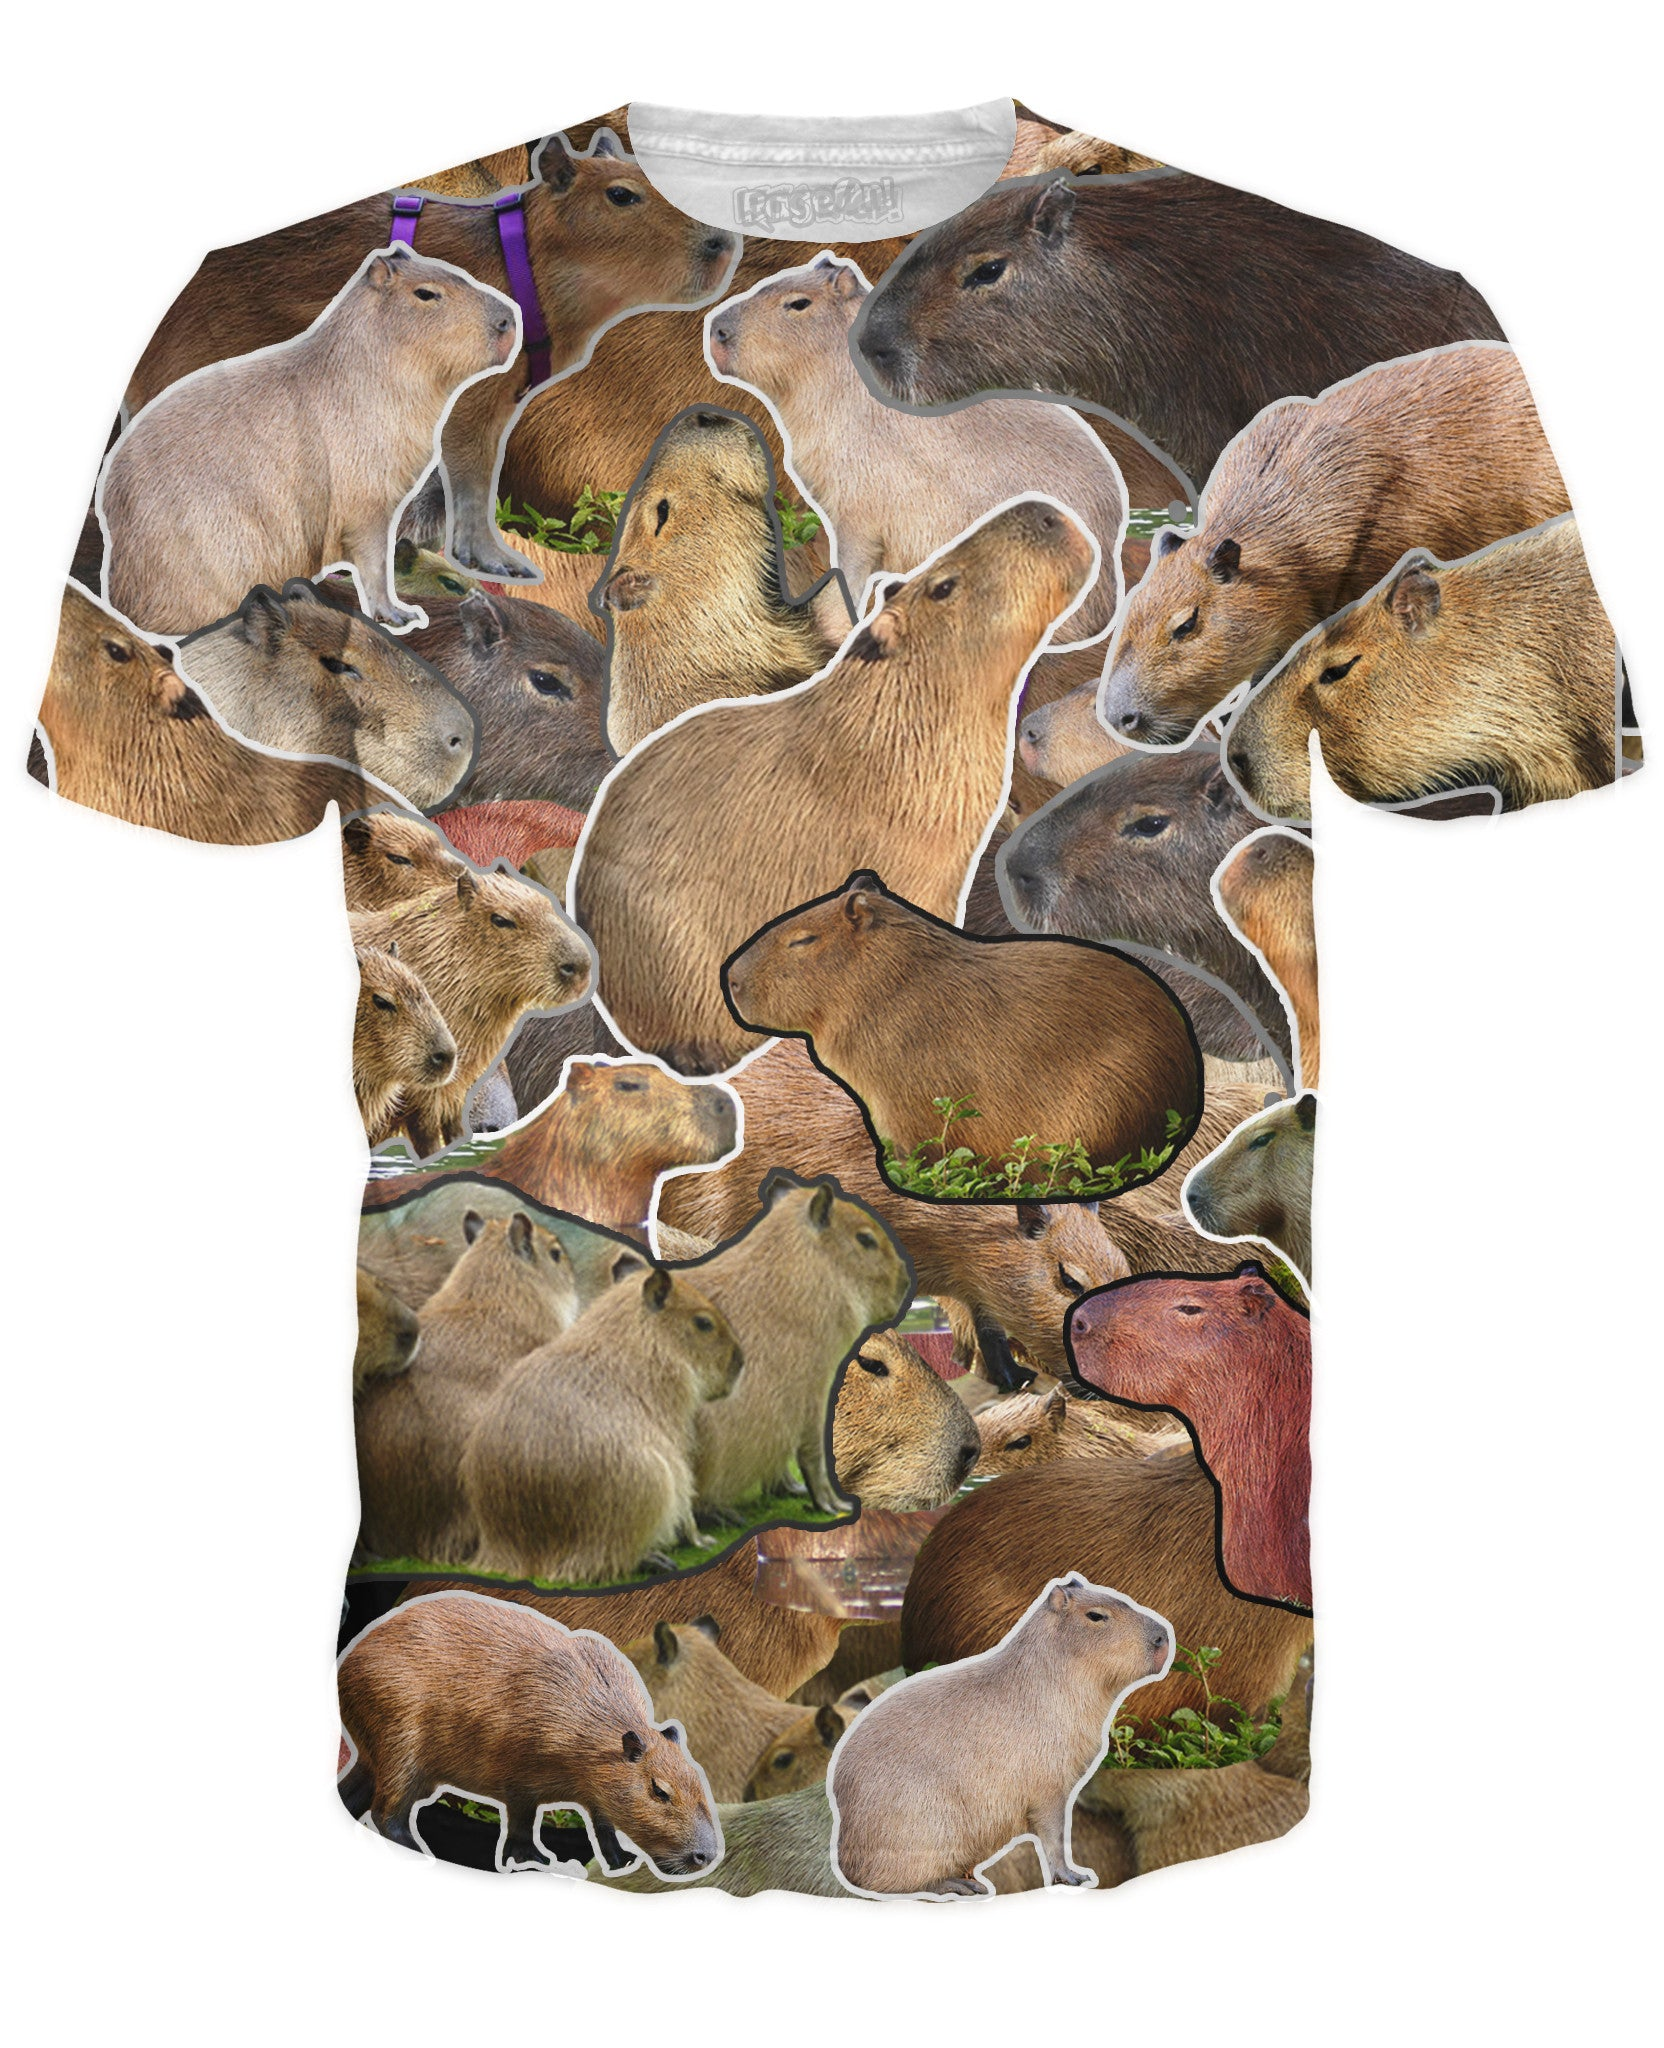 Capybara Collage T-Shirt